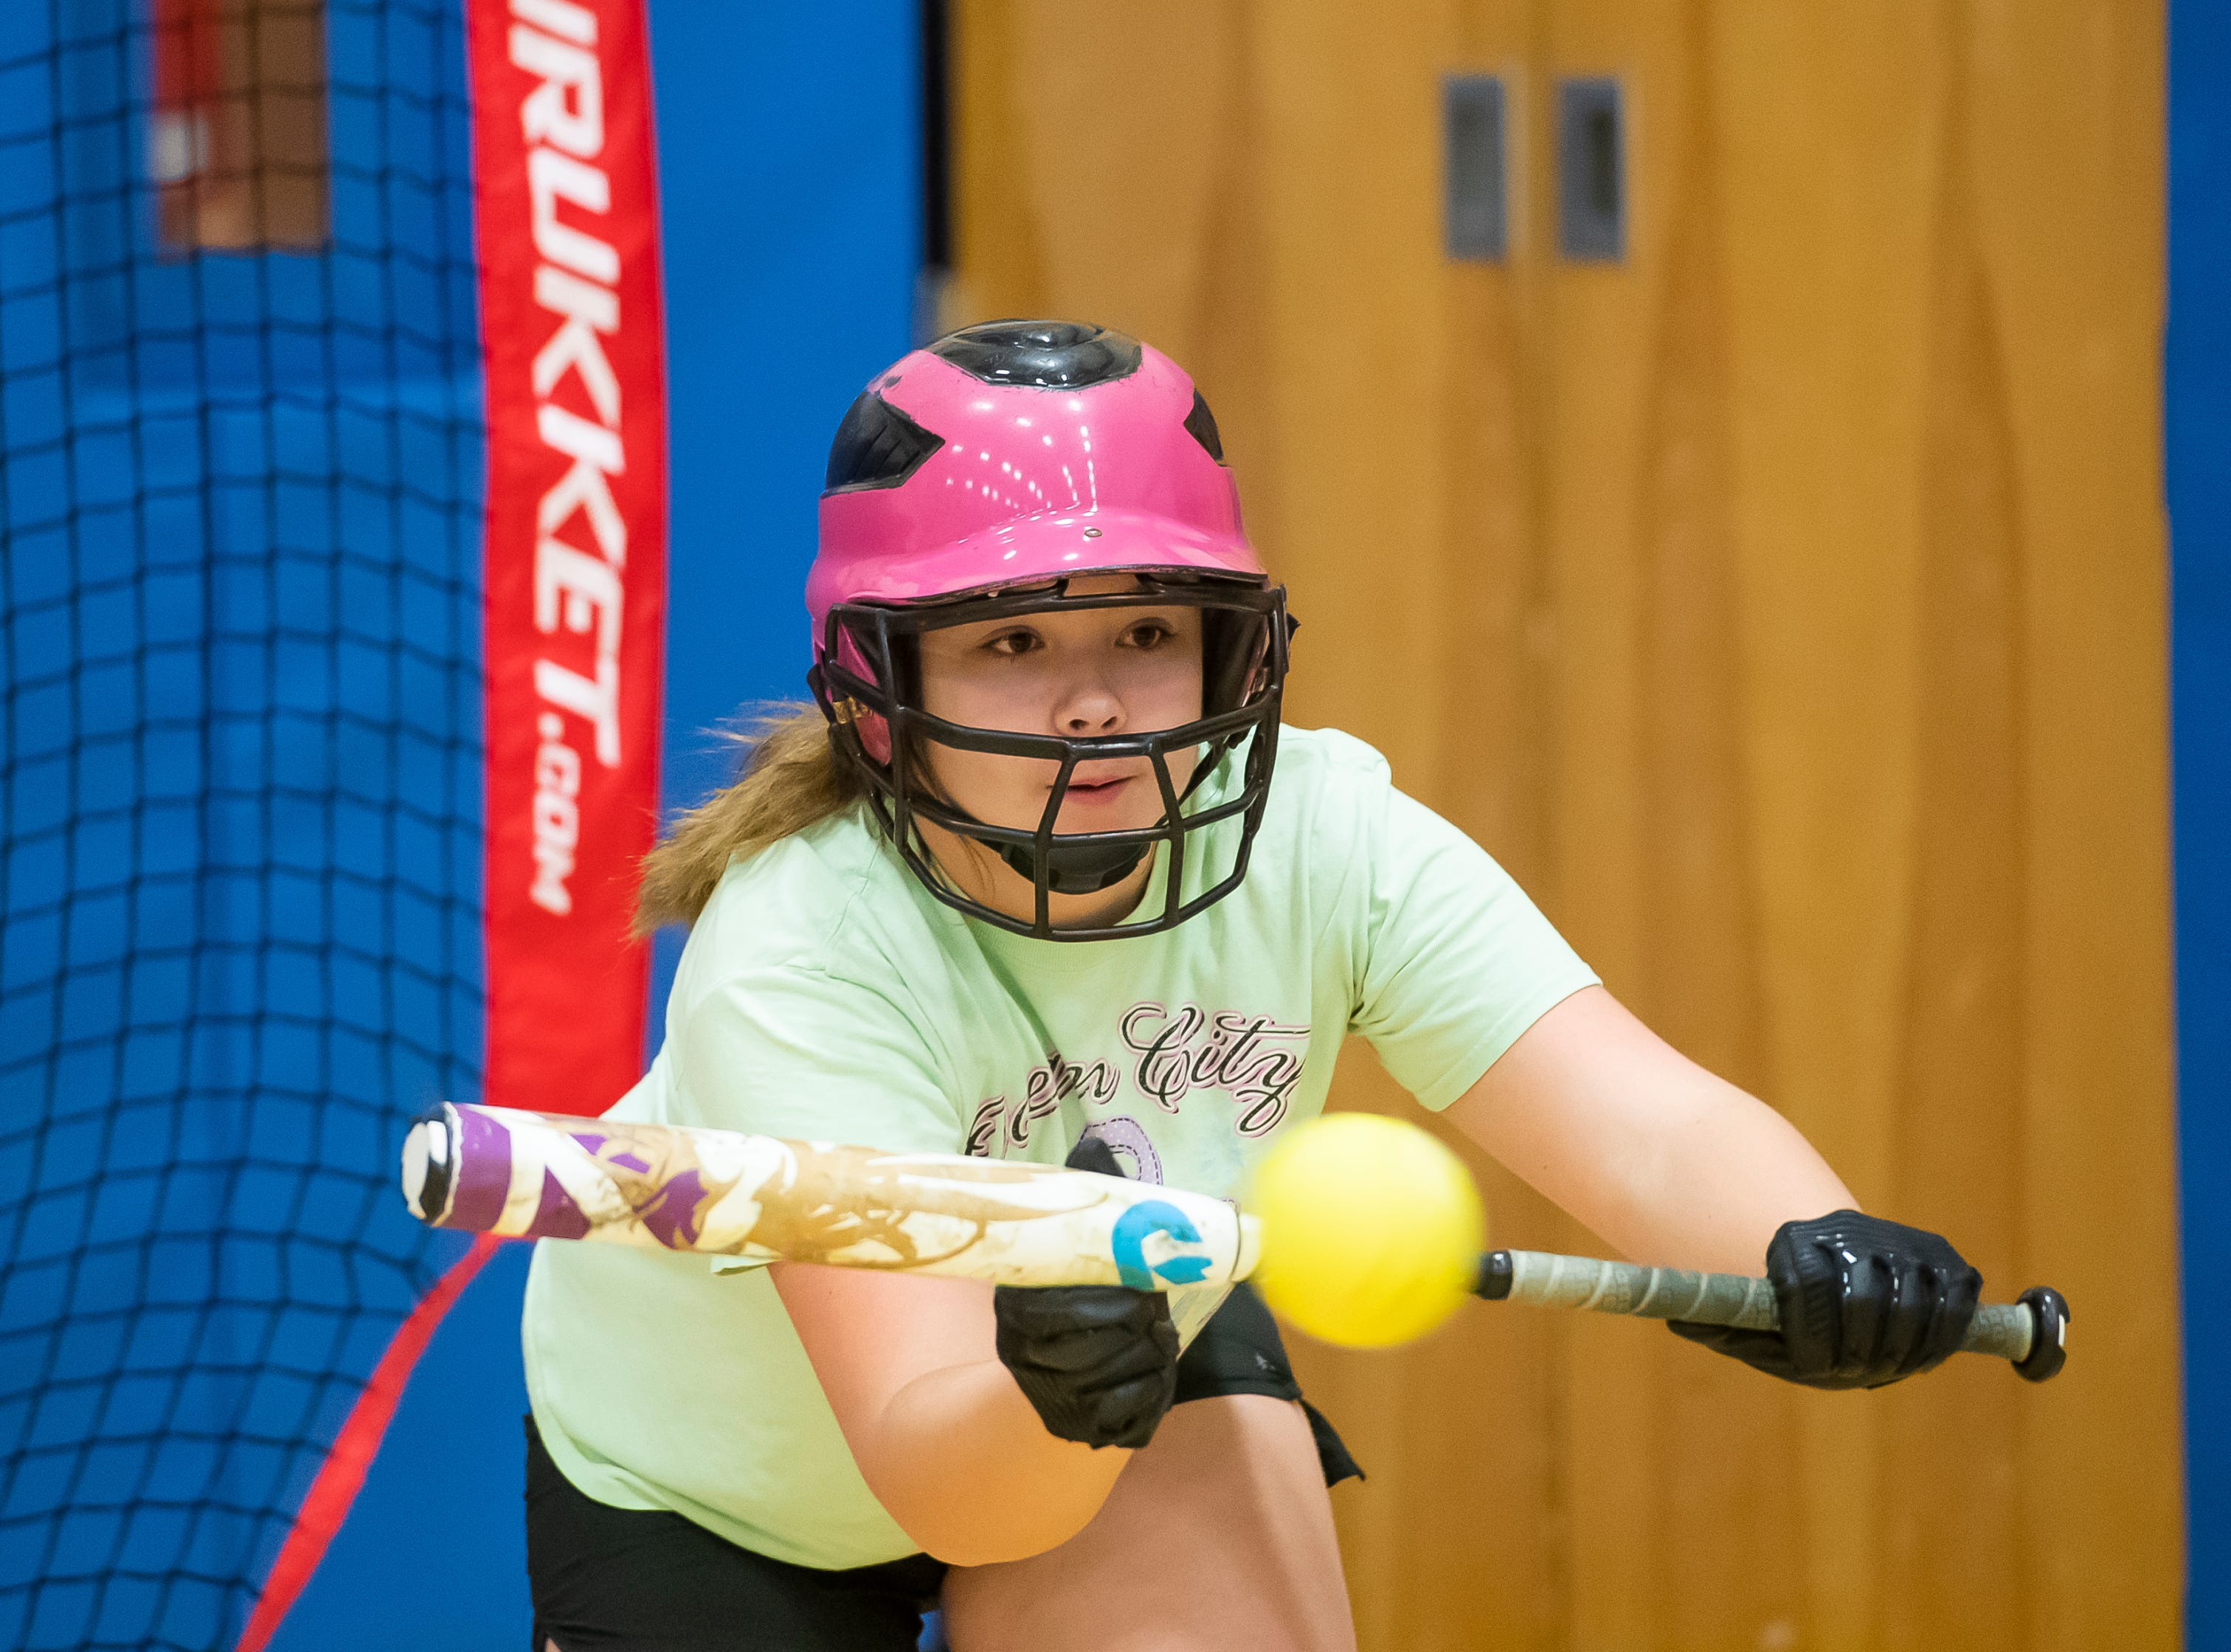 Littlestown's Destiny Henderson practices bunting on the first day of spring sports practice inside the Littlestown High School gym Monday, March 4, 2019.